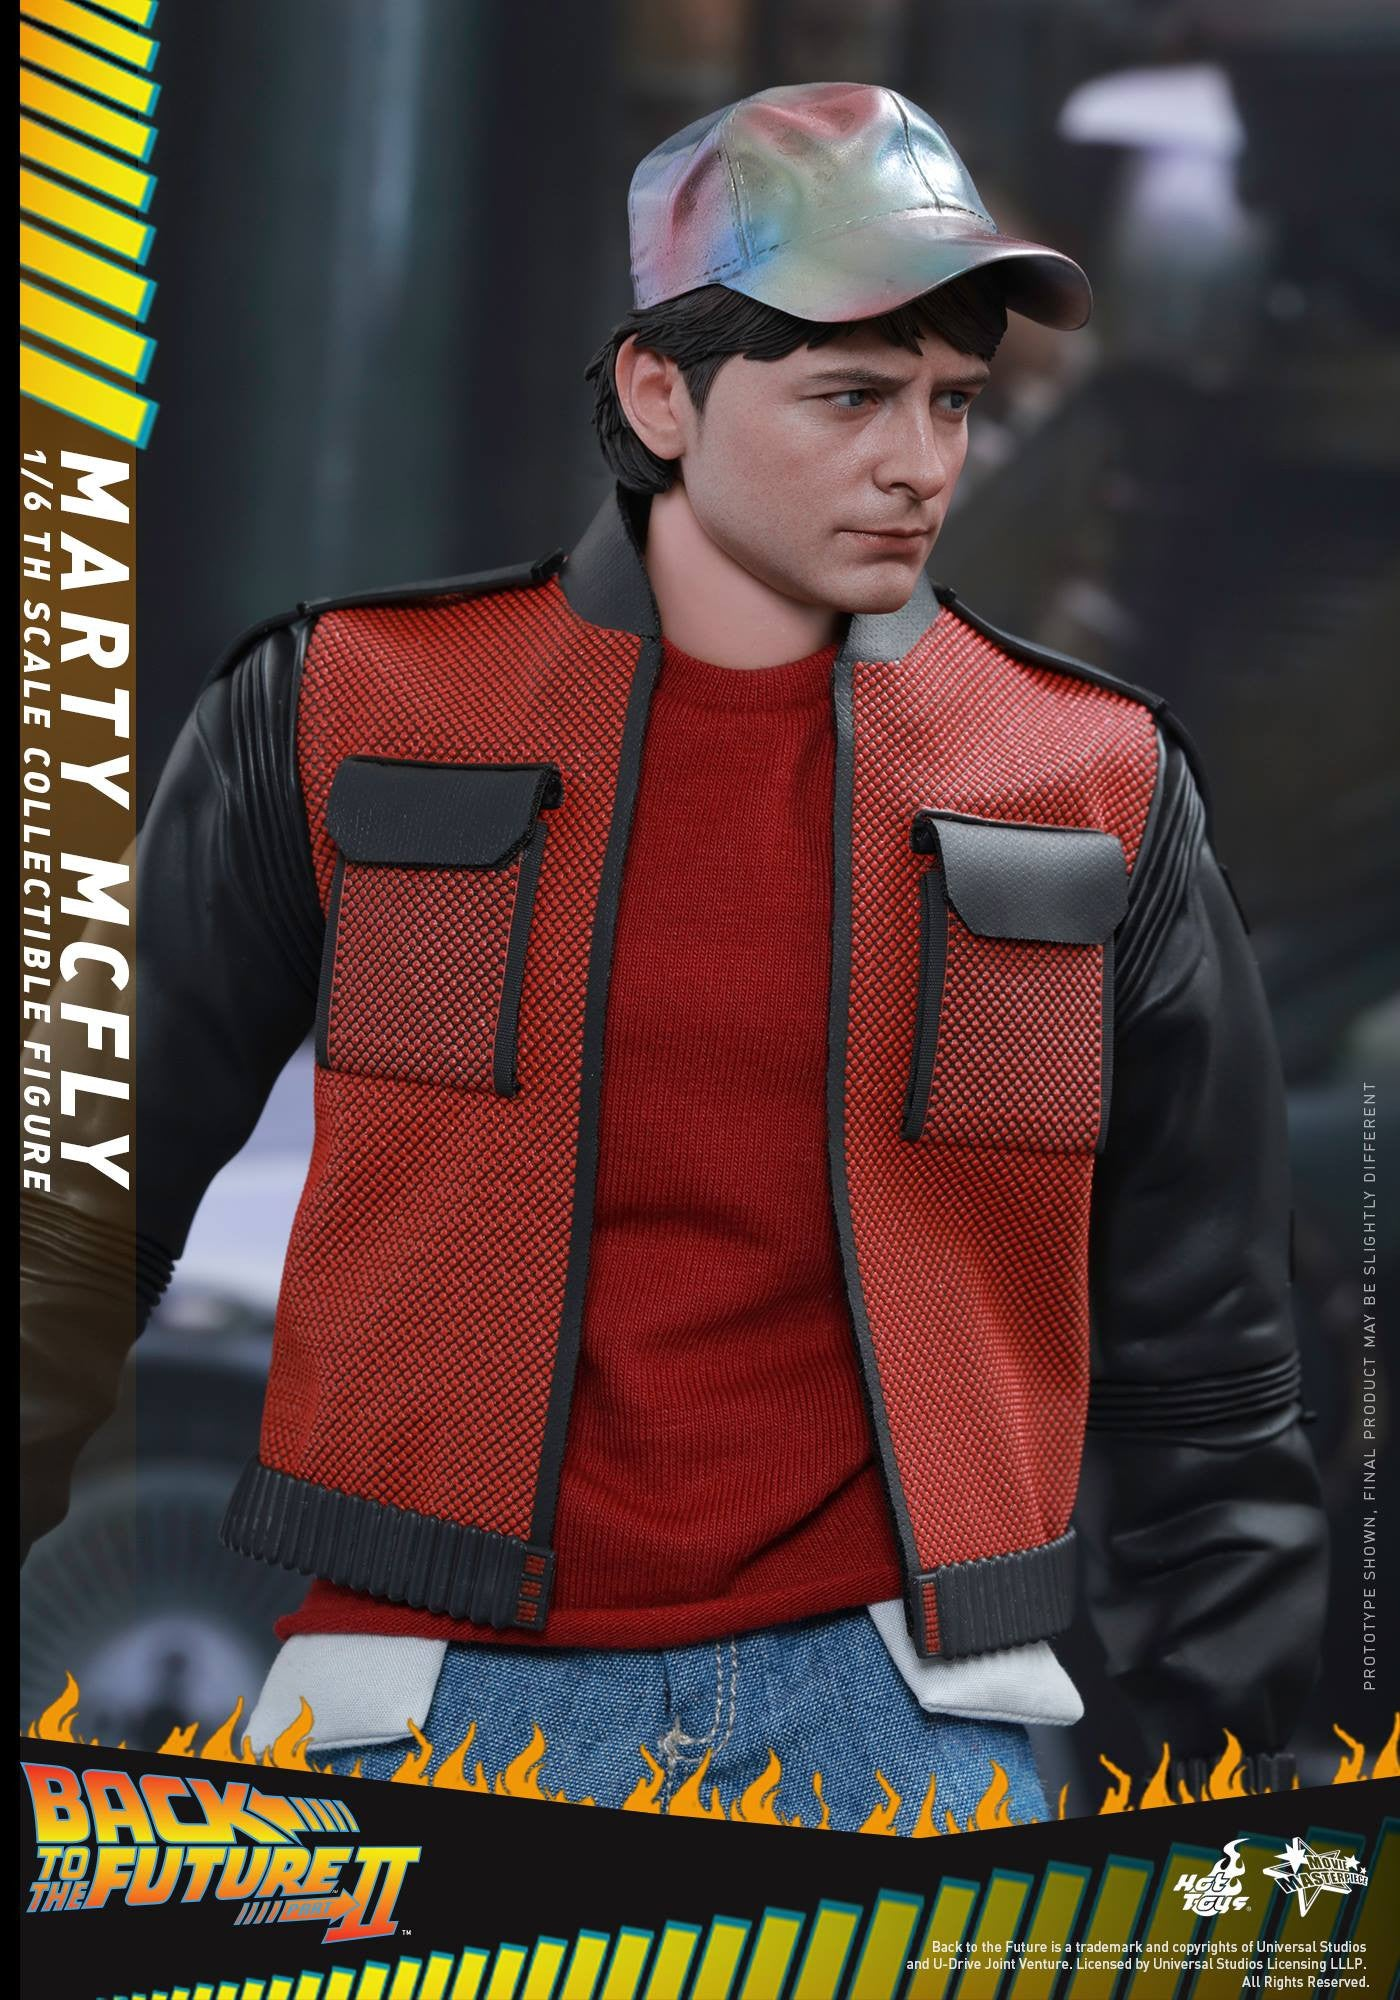 Hot Toys - MMS379 - Back to The Future Part II - Marty McFly (Normal Edition) - Marvelous Toys - 5